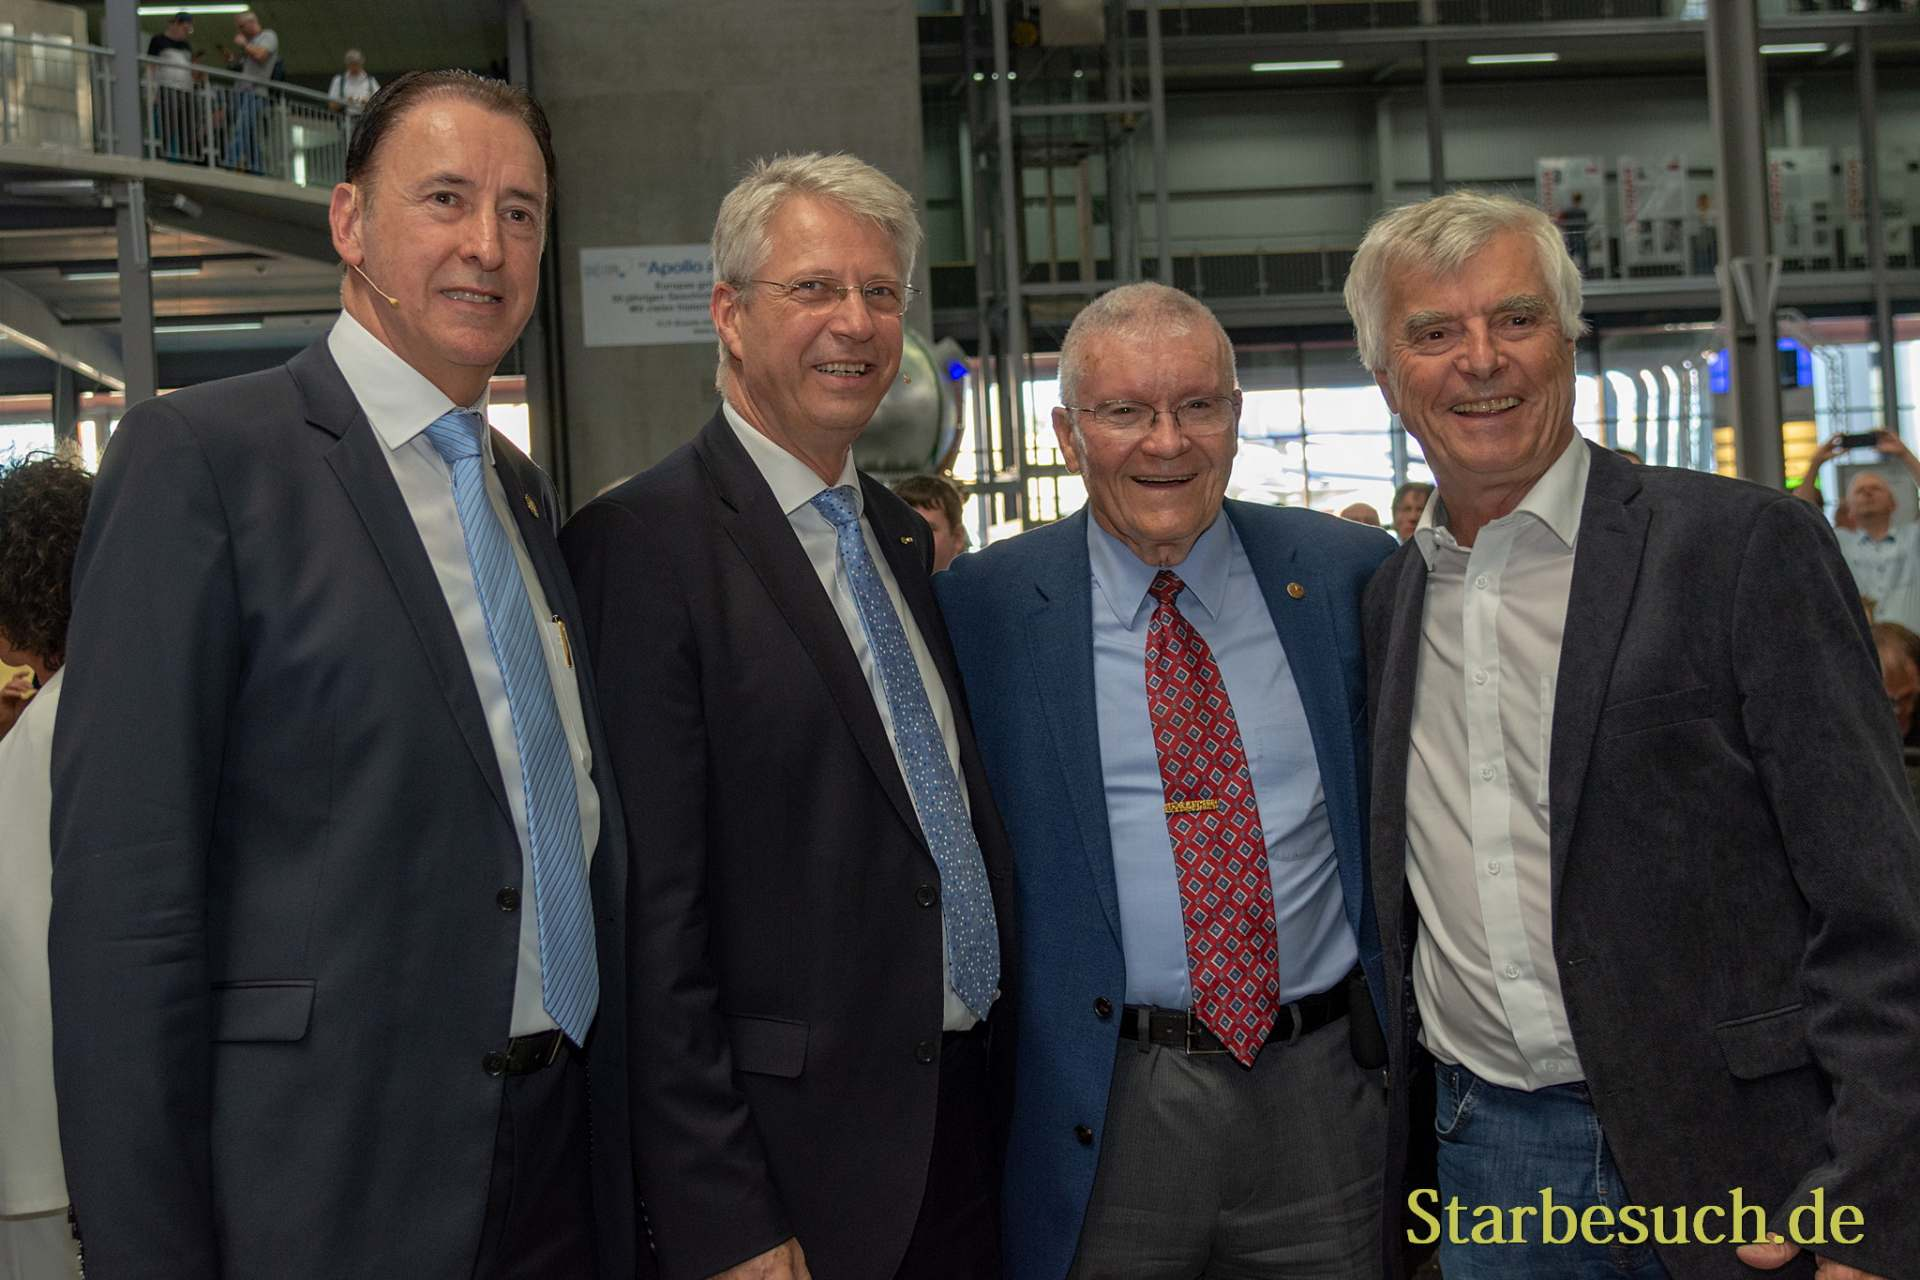 SPEYER, Germany - October 14th 2018: Gerhard Daum, Thomas Reiter, Fred Haise and Ulf Merbold at Space Flight Day